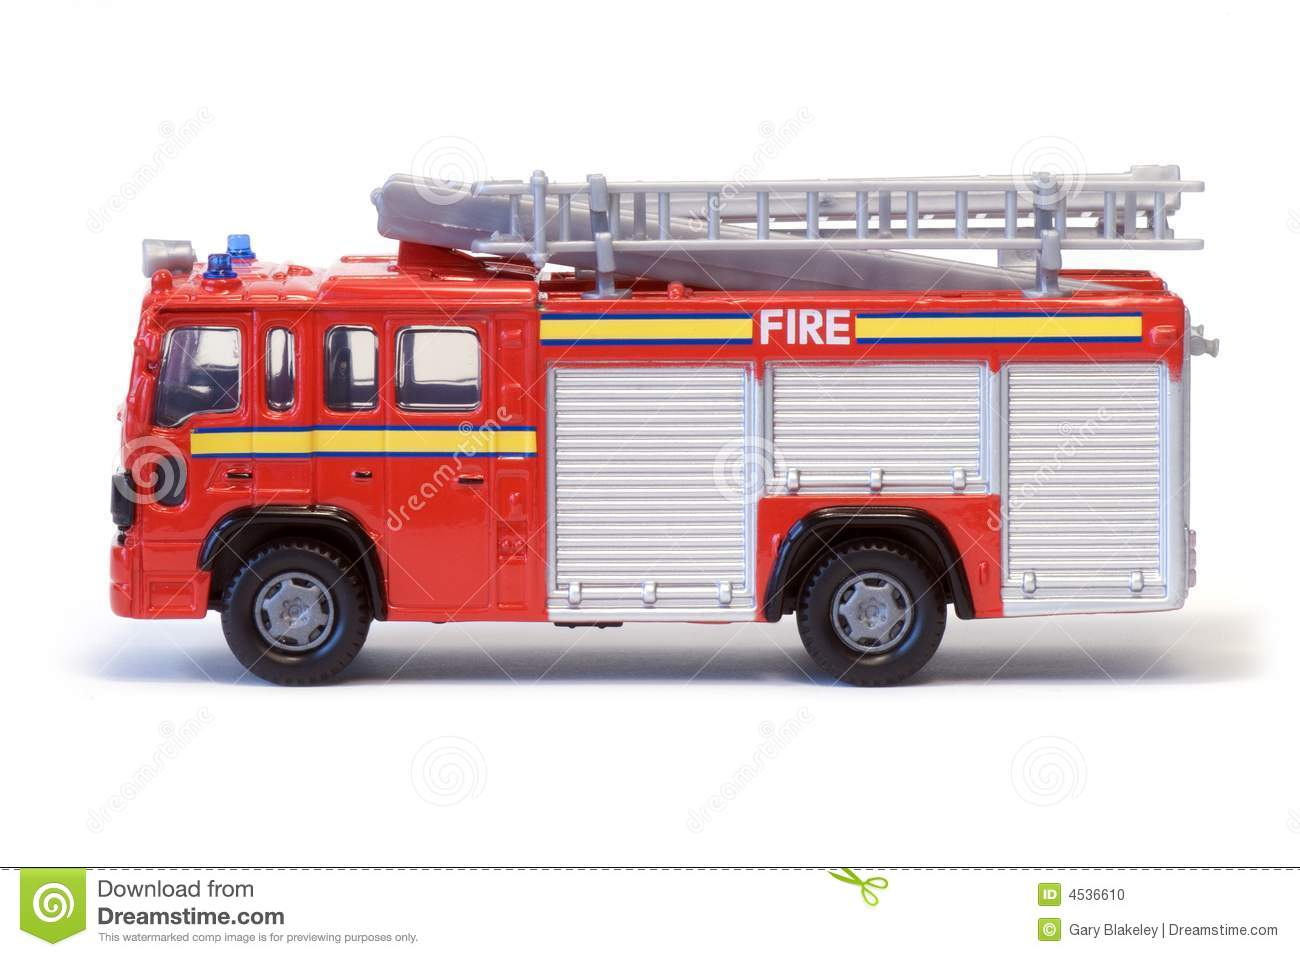 toy lorry videos with Stock Photo Toy London Fire Engine Image4536610 on Watch further Royalty Free Stock Images Coloring Book Vehicles Page Kids Colorful Toys Sketches To Color Image39008109 likewise 5753 Sutphen Fire Truck furthermore Rea 4349 in addition 51c853 Stripeblue 24 Ghz.